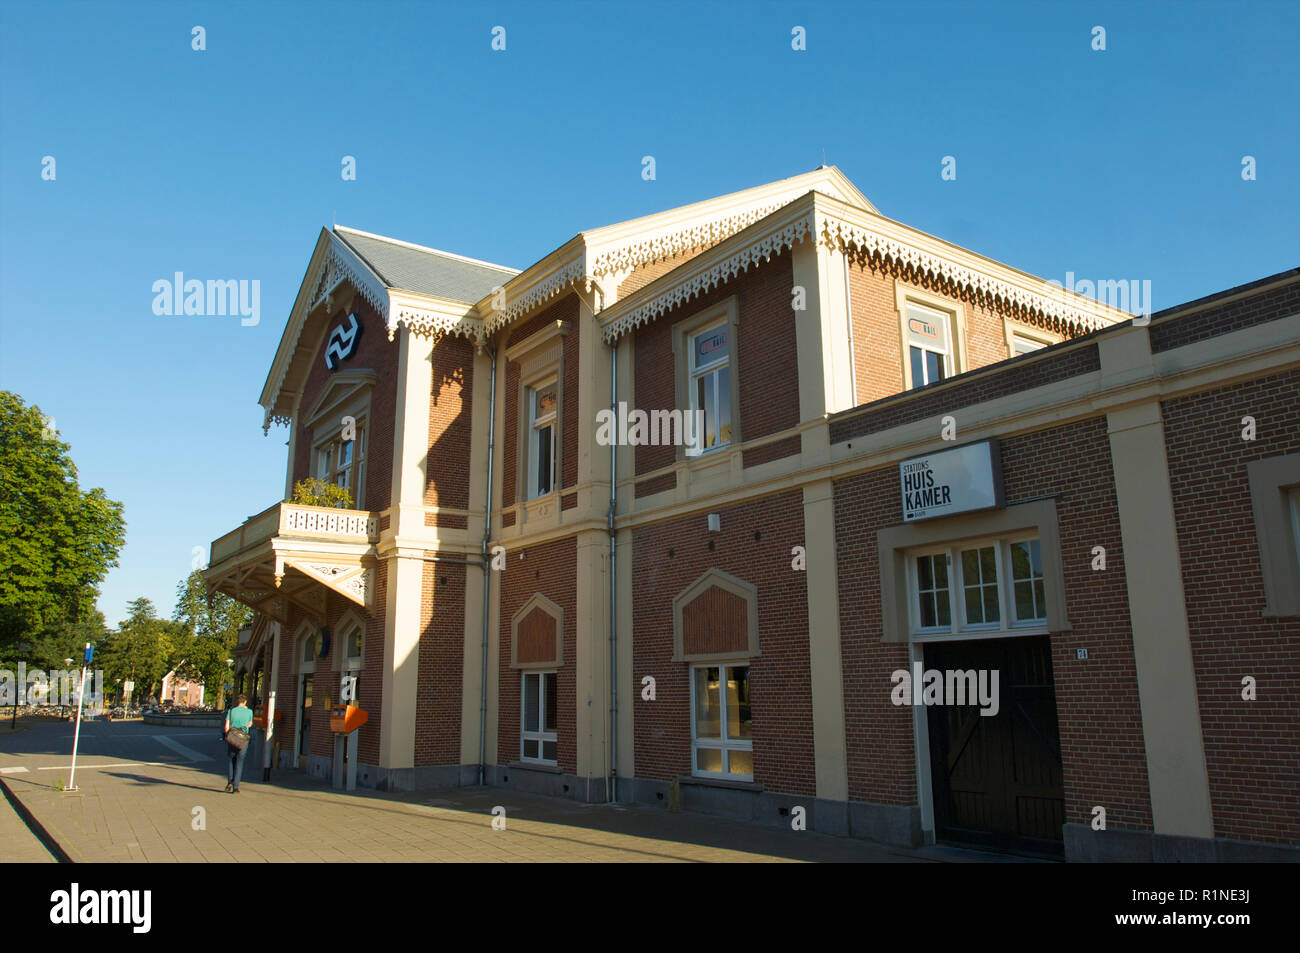 The front side of the historic railway station in Baarn with its specific architecture and used for the Dutch Royal family, the Netherlands - Stock Image